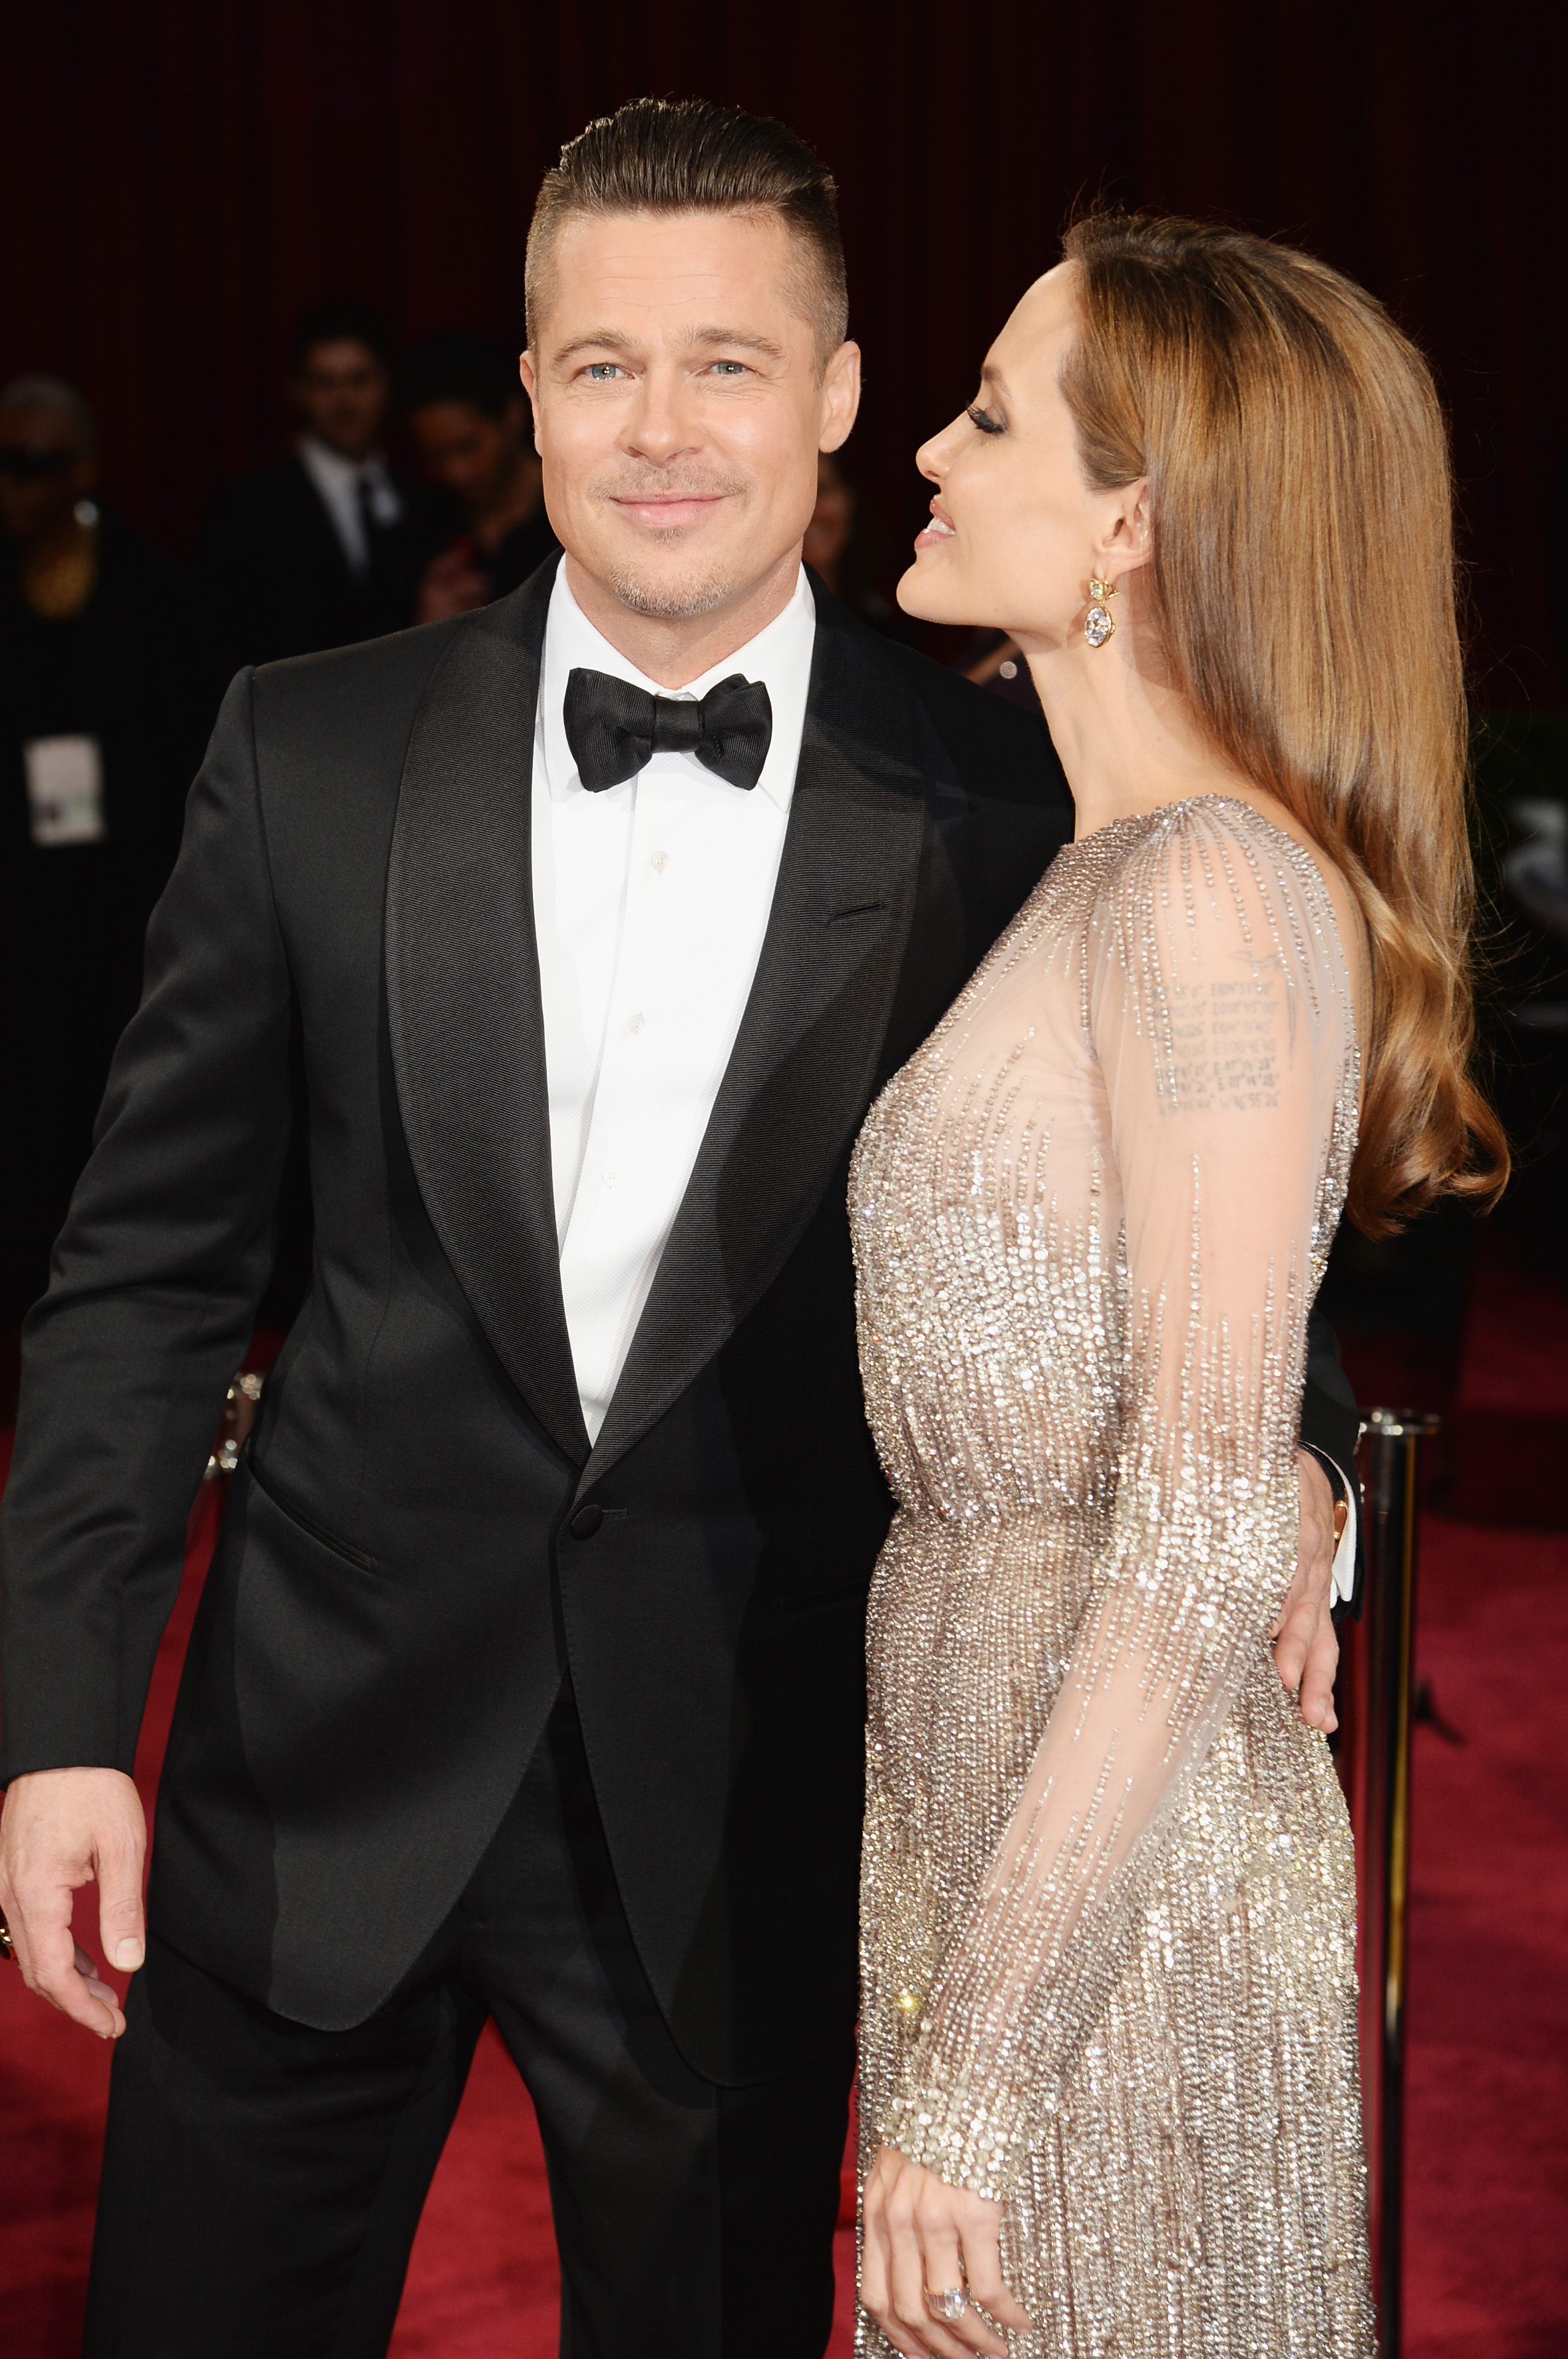 HOLLYWOOD, CA - MARCH 02: Actor/producer Brad Pitt and actress Angelina Jolie attend the Oscars held at Hollywood & Highland Center on March 2, 2014 in Hollywood, California. (Photo by Jeff Kravitz/FilmMagic)